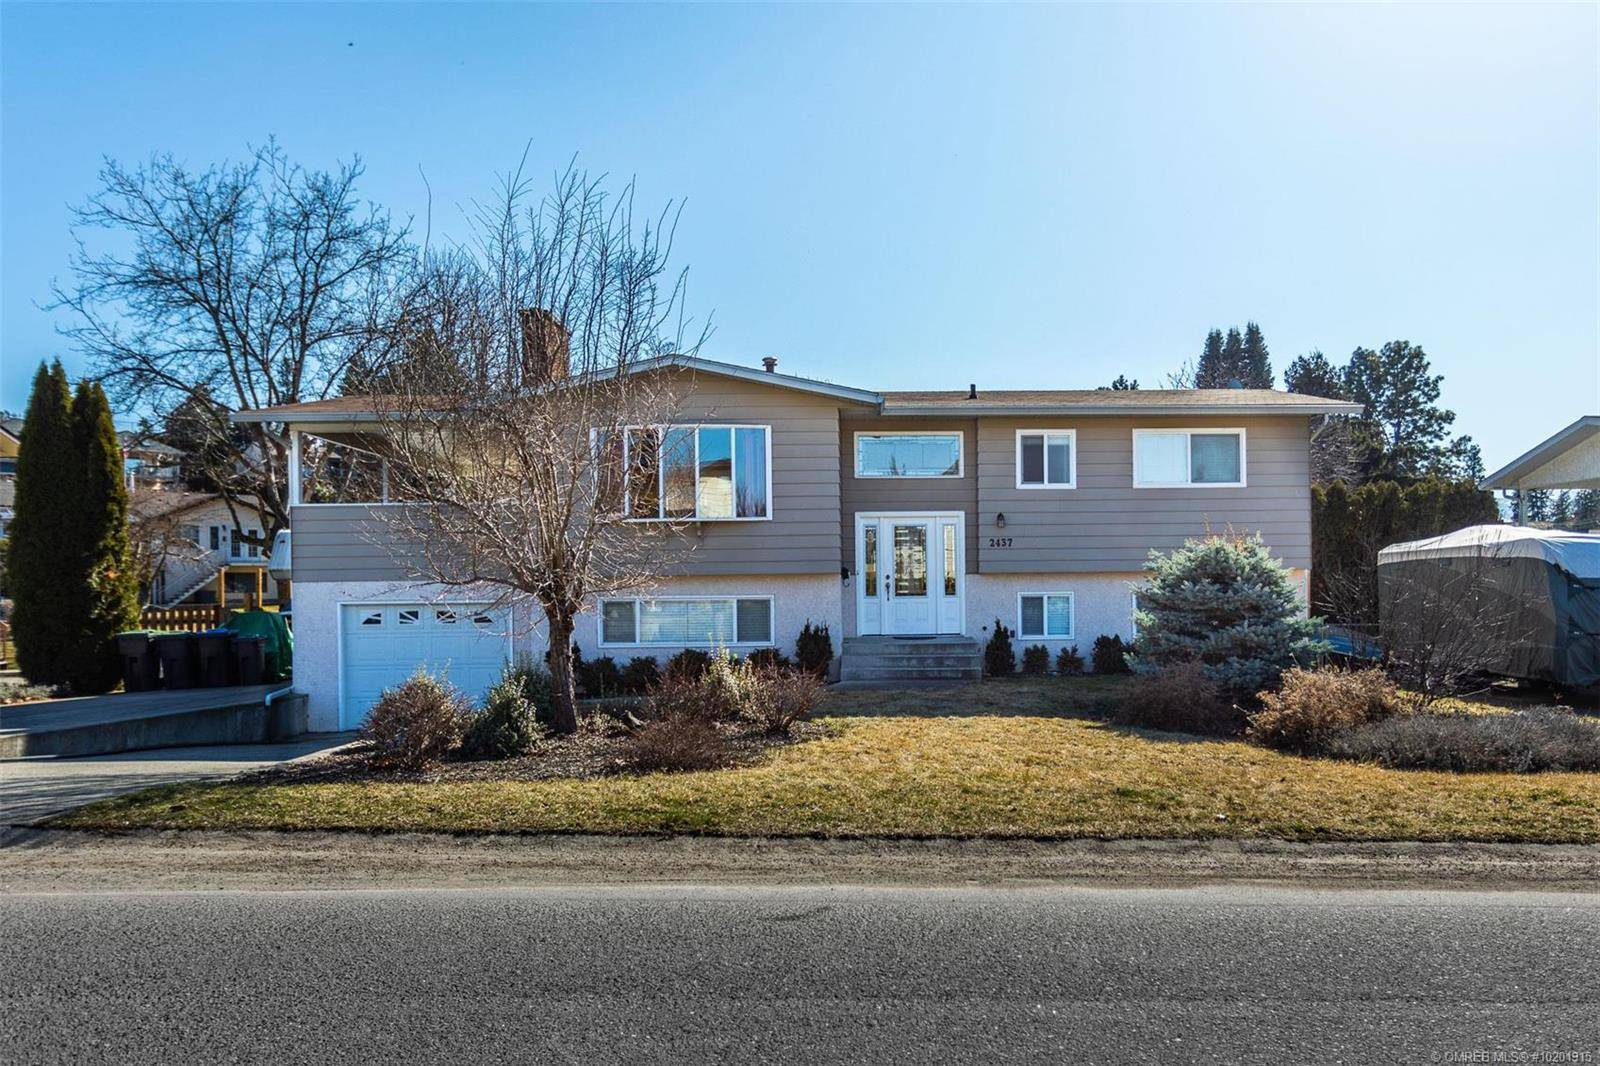 House for sale at 2437 Packers Rd Kelowna British Columbia - MLS: 10201915